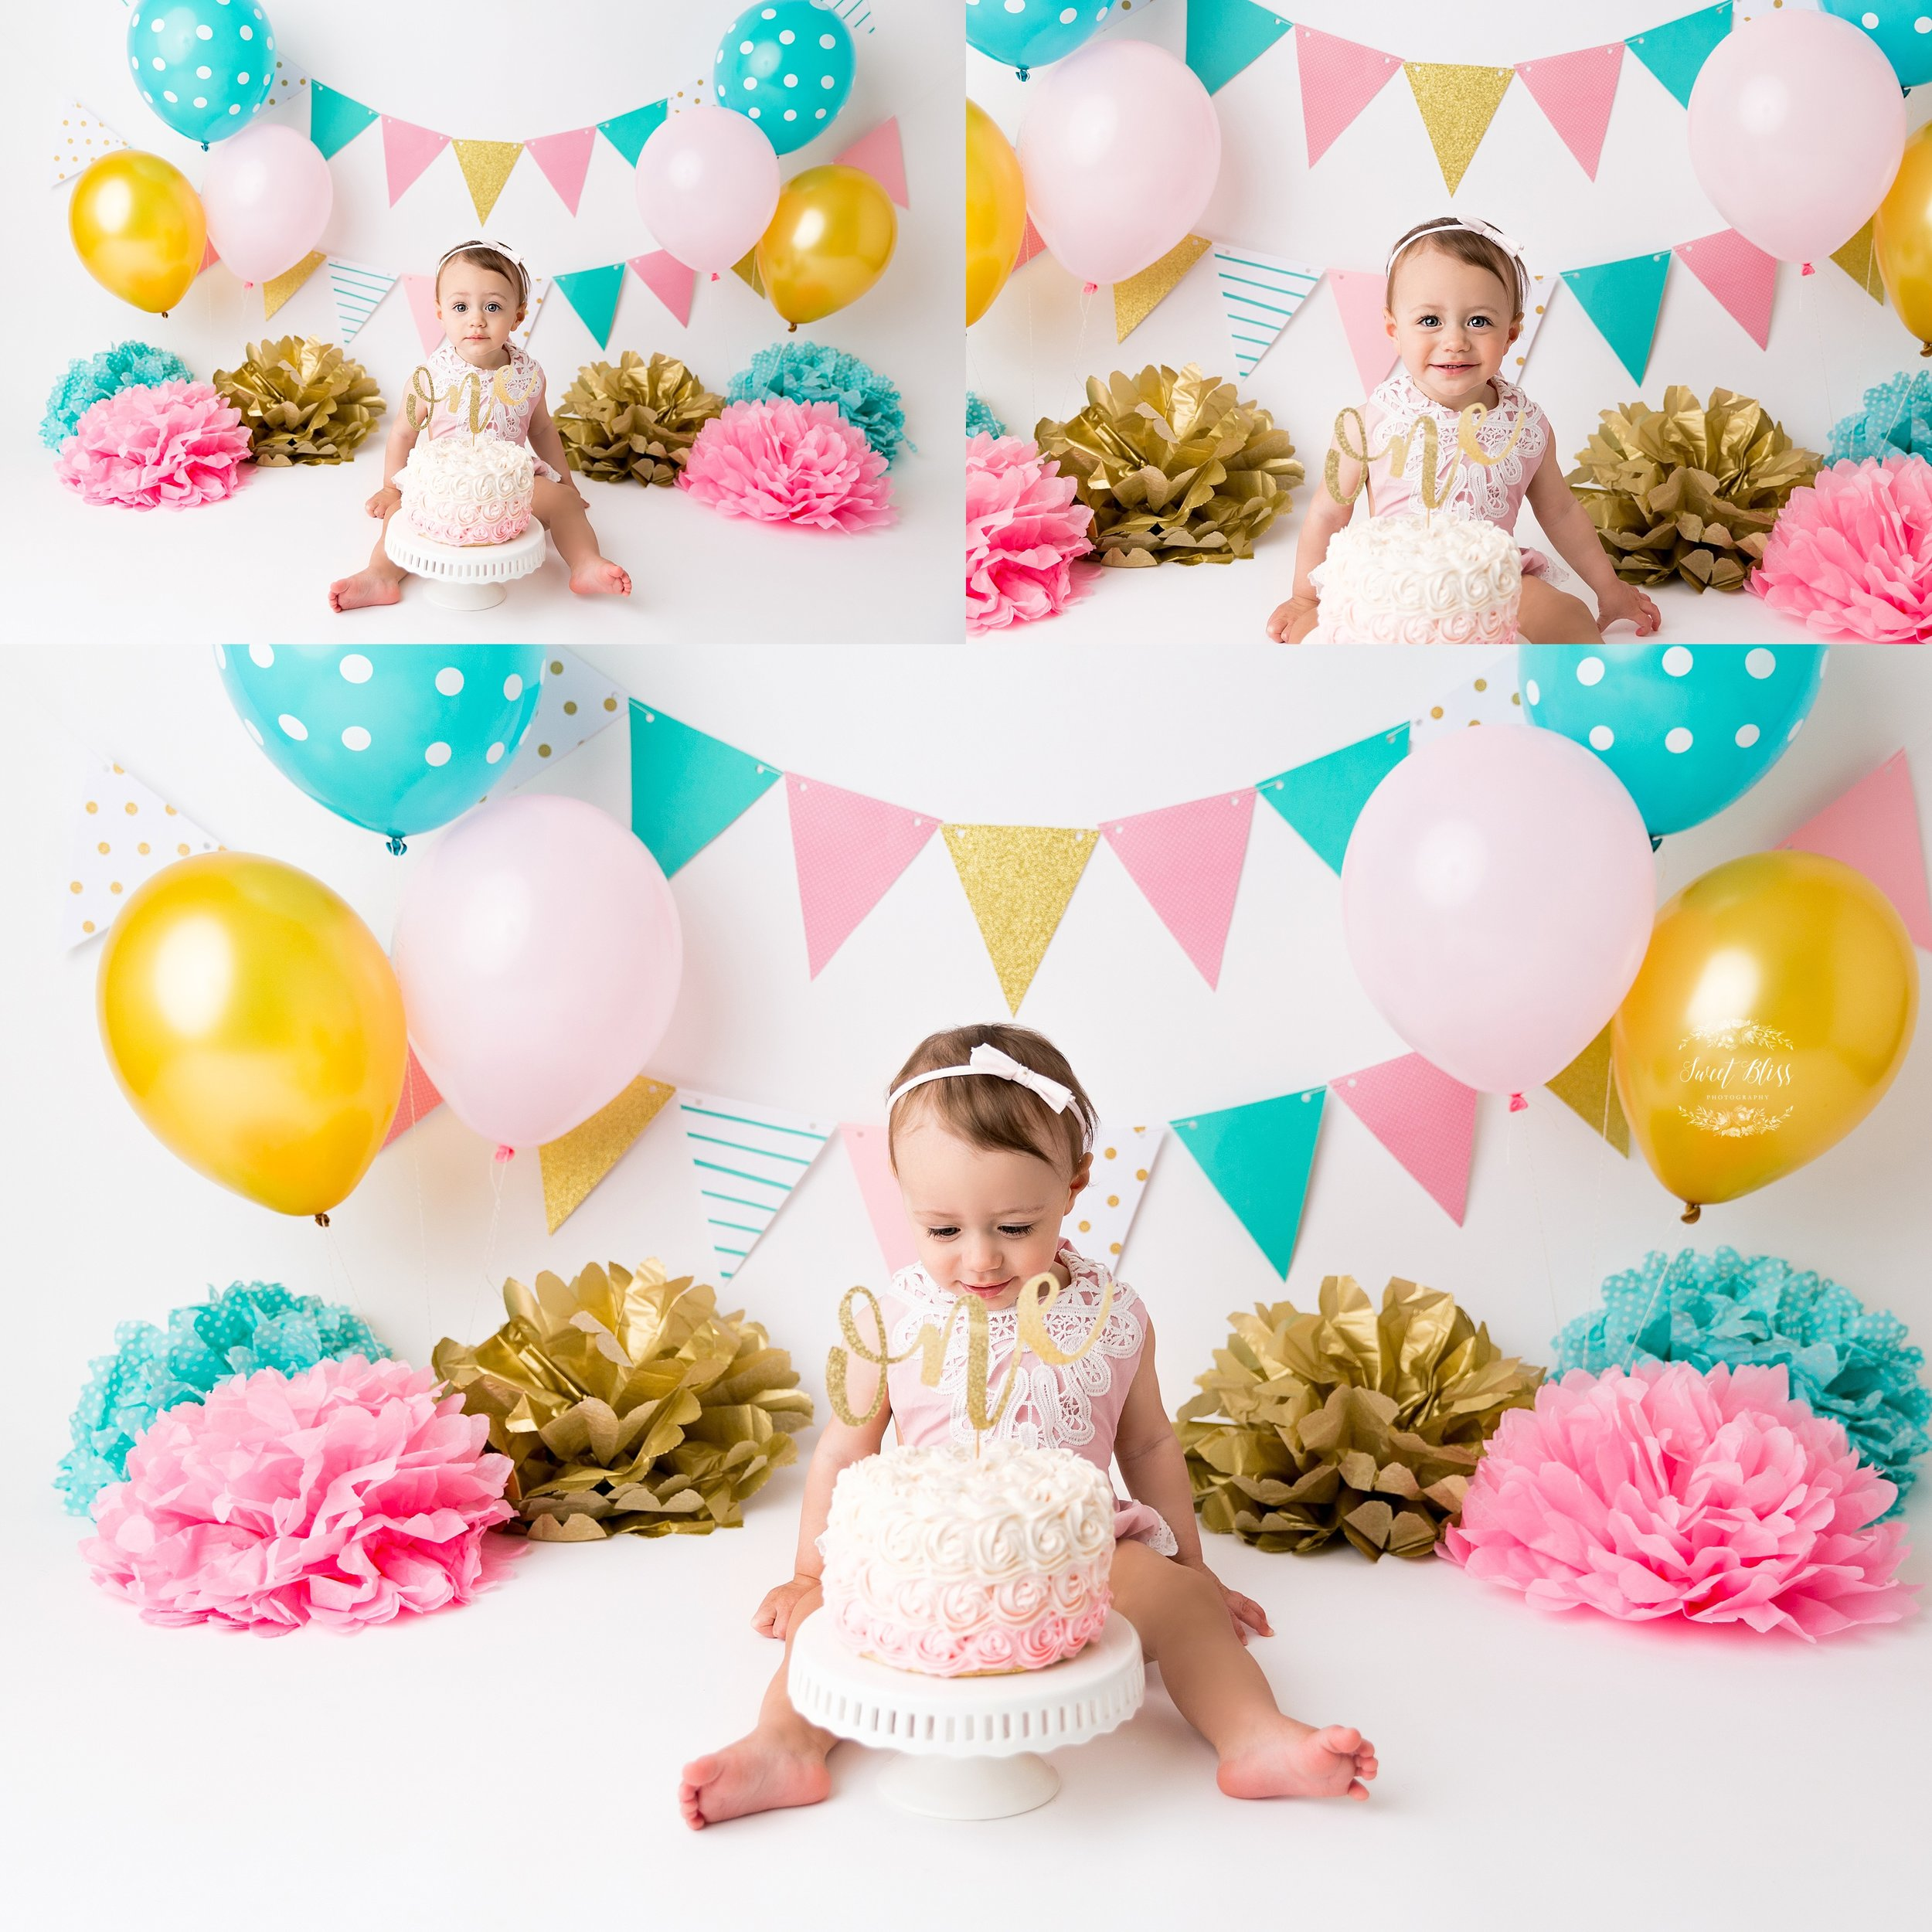 Cakesmash_SweetBlissphotography_marylandphotographer-18.jpg